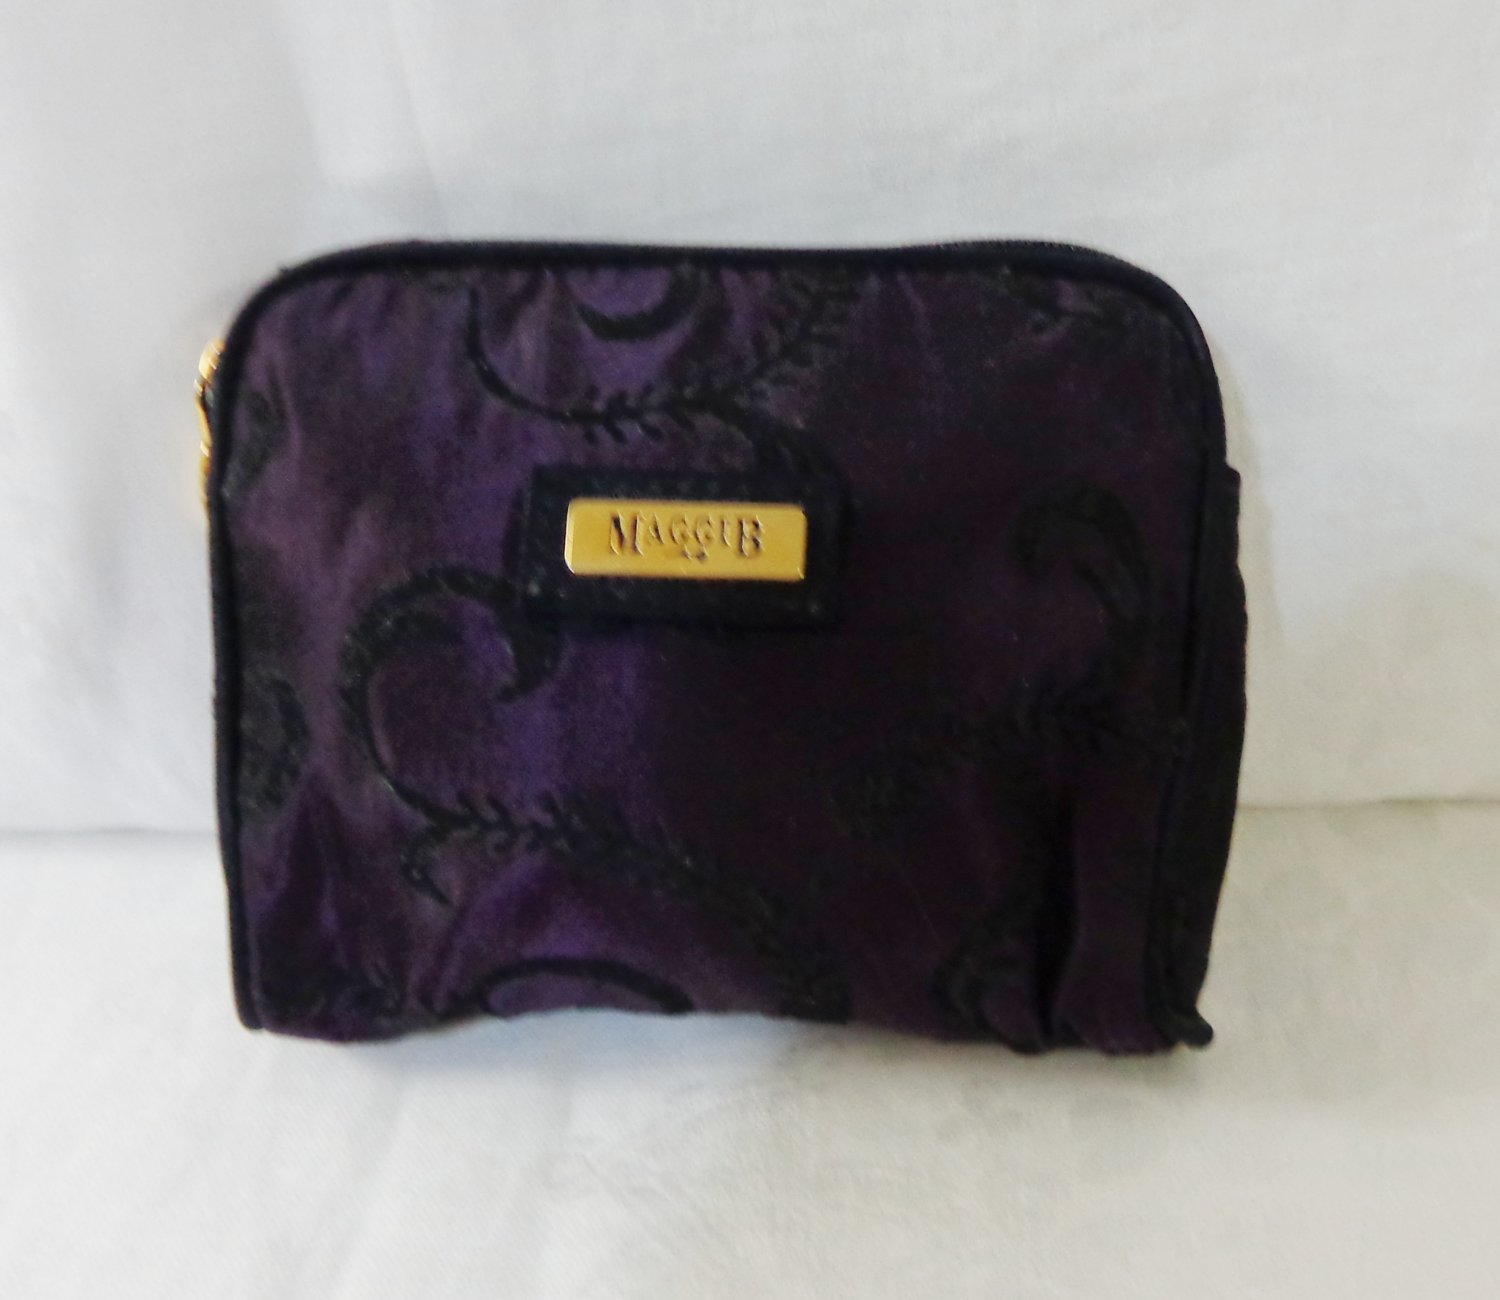 MaggiB purse cosmetic case padded black on plum as new ll3362